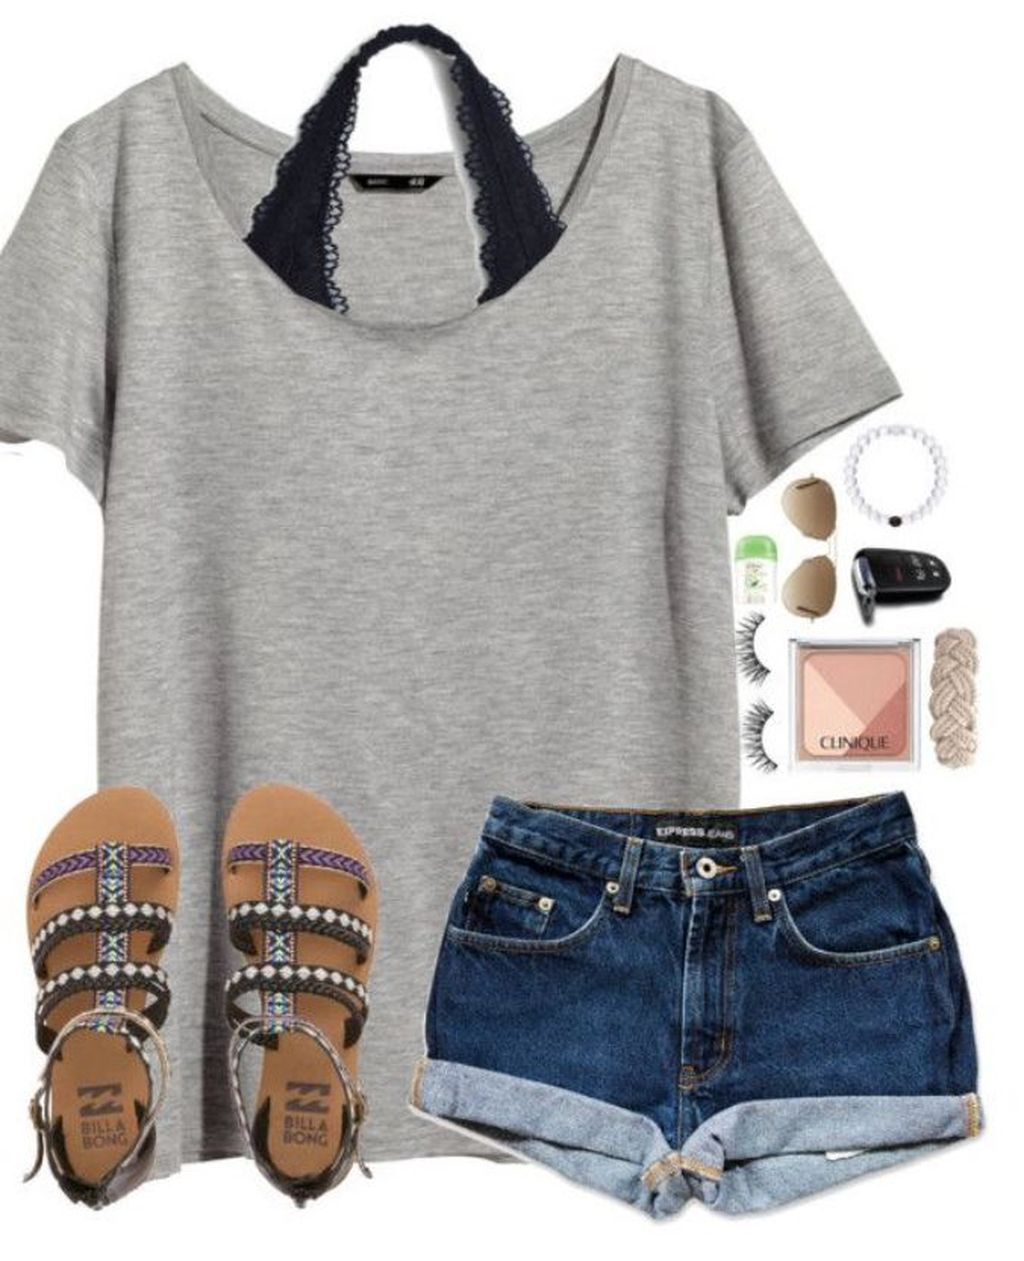 30 Popular Summer Polyvore Outfits Ideas  Cute summer outfits for